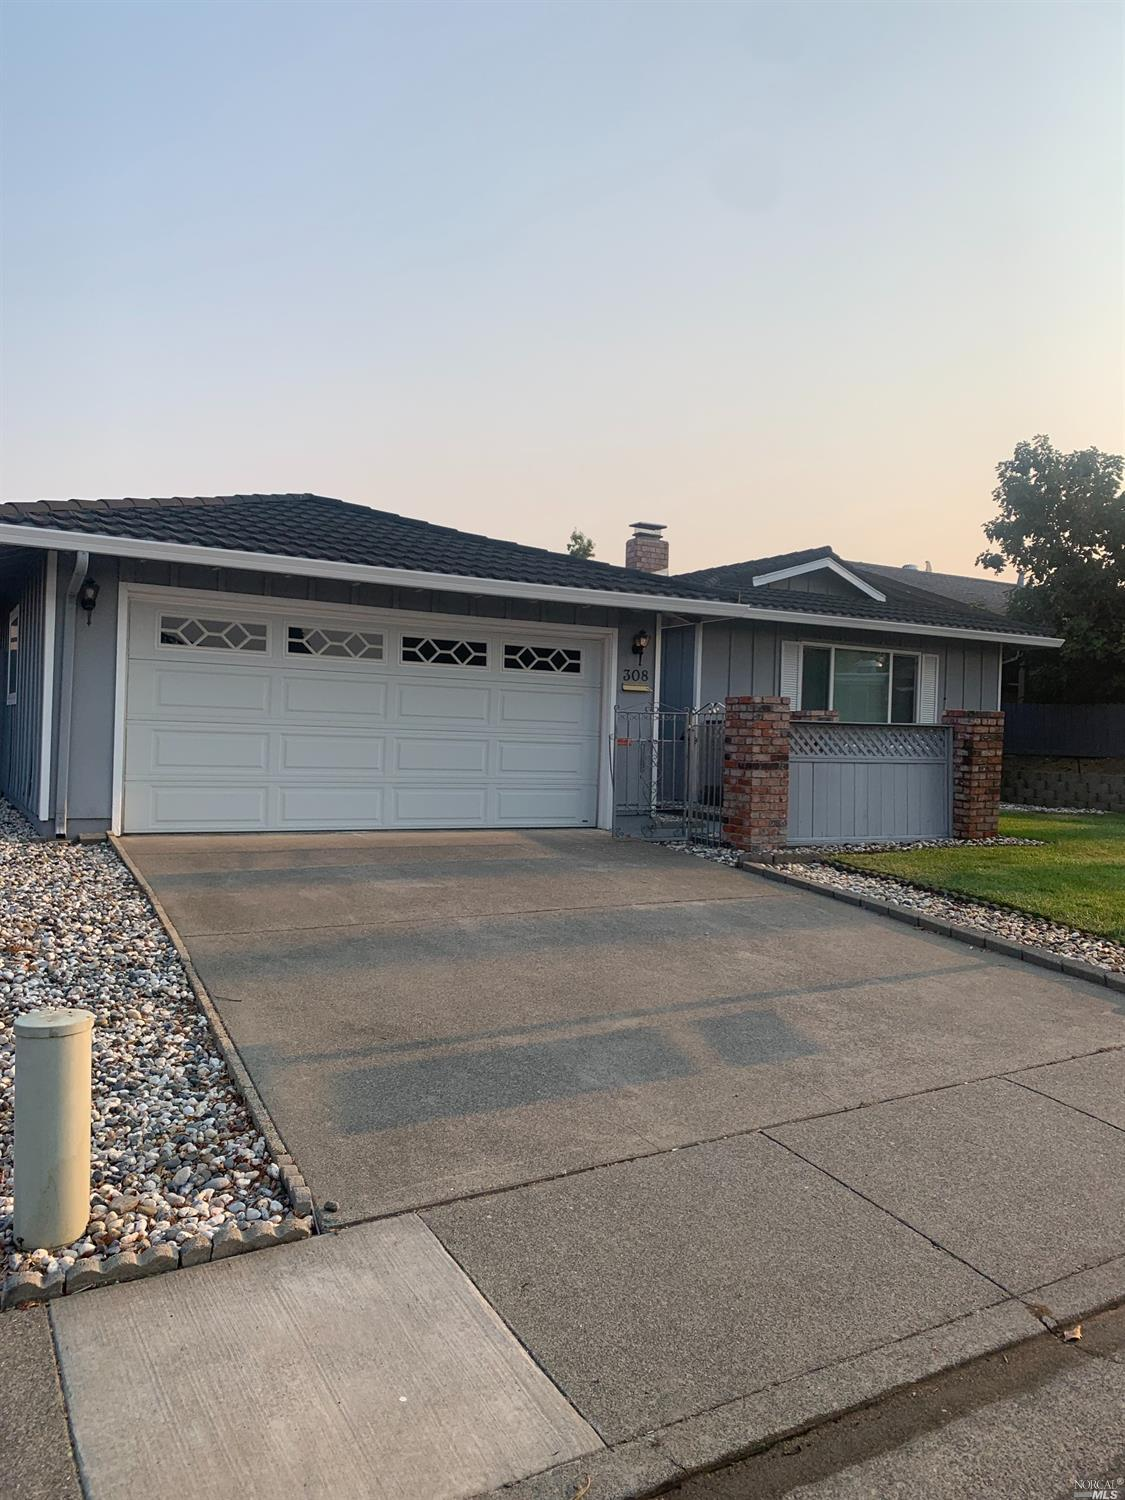 Well kept 3 bedroom 2 bath home with detached 2 car garage. Kitchen has been remodeled with granite